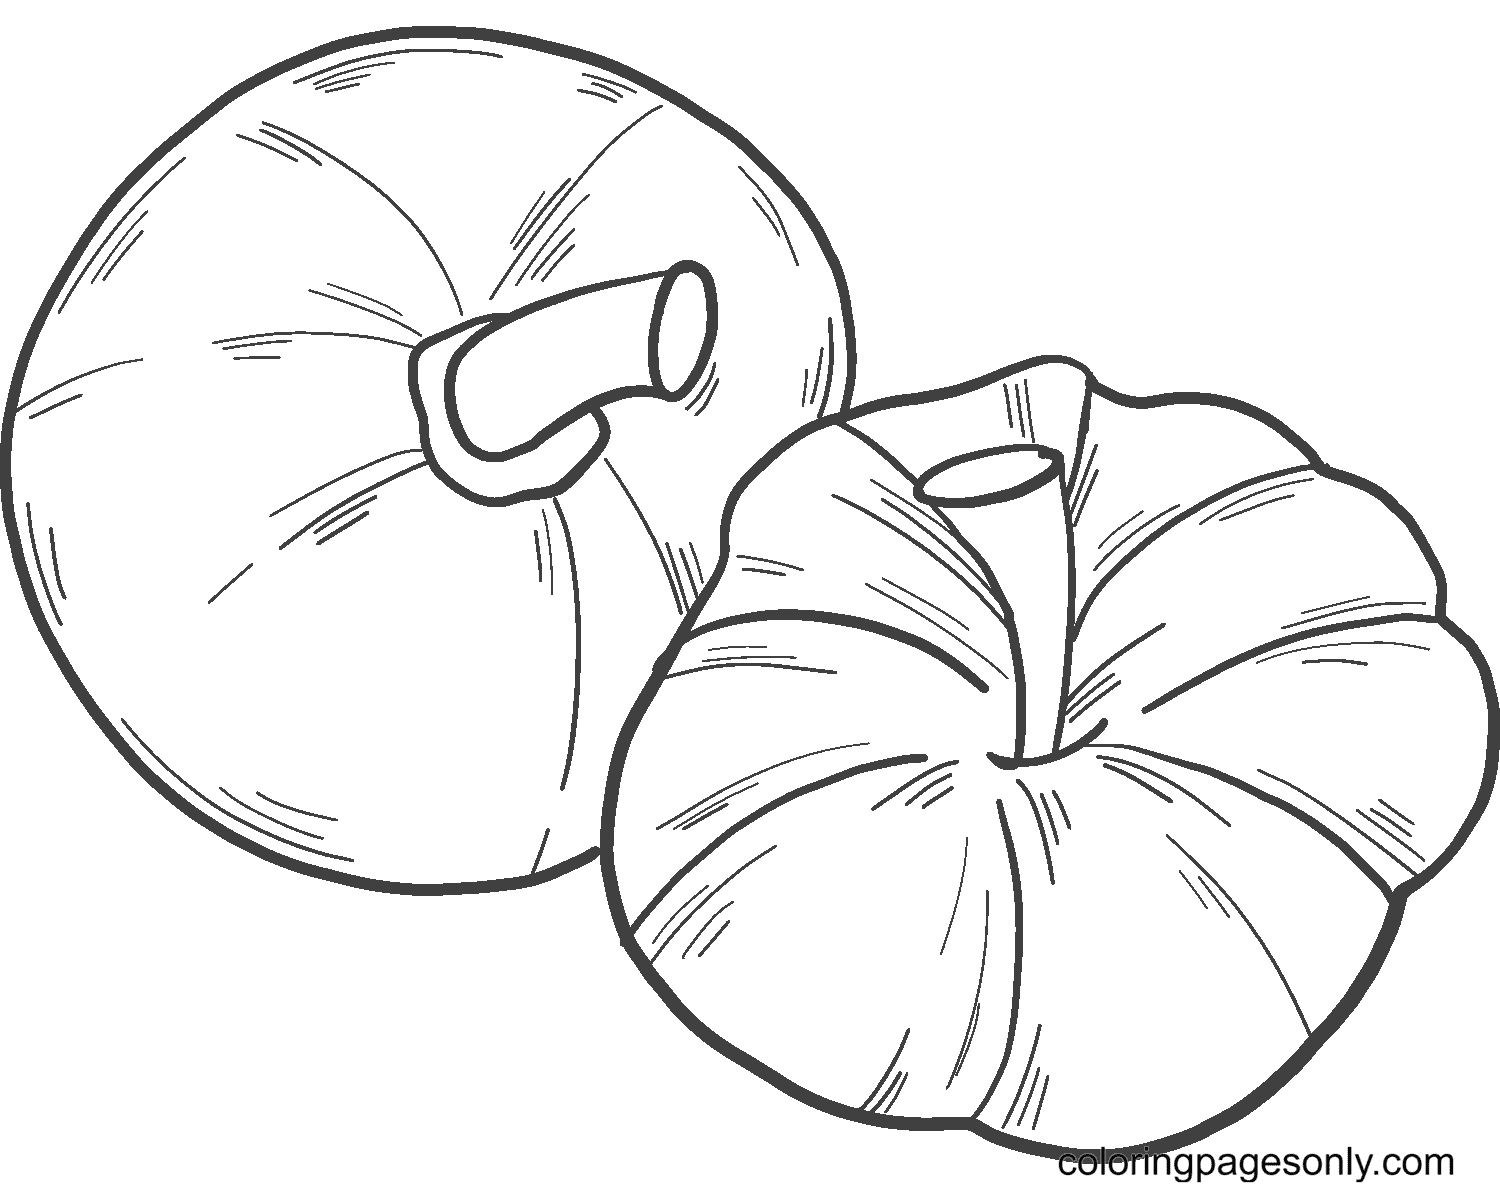 Two Simple Pumpkins Coloring Page